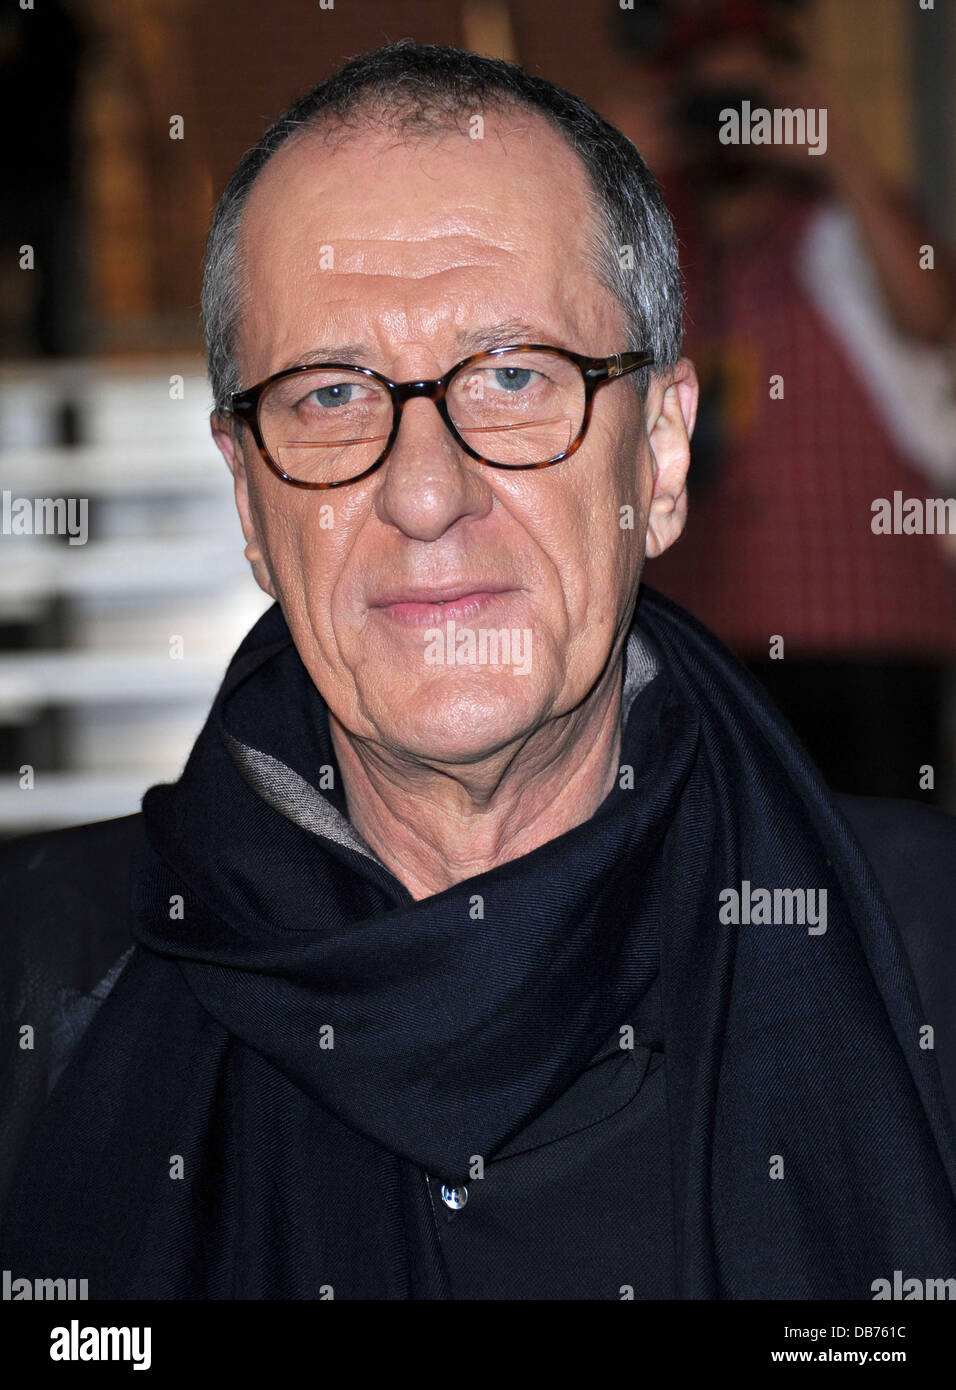 Geoffrey Rush 'Pirates Of The Caribbean: On Stranger Tides' World Premiere held at Disneyland Anaheim, California - Stock Image